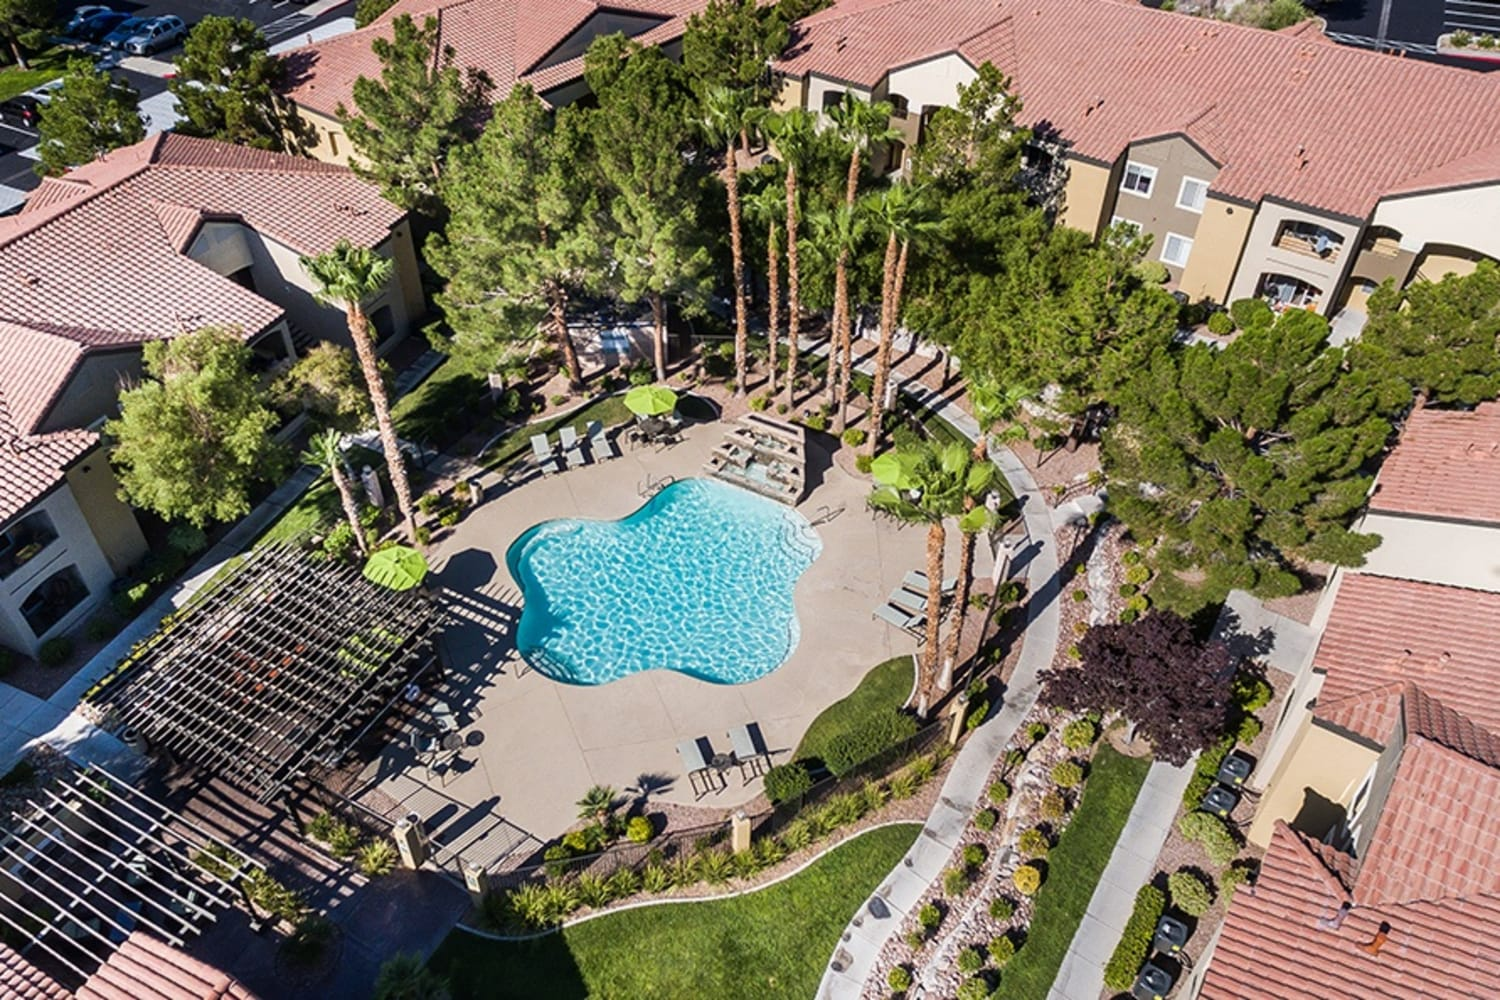 Aerial view of swimming pool at Rancho Destino Apartments in Las Vegas, Nevada